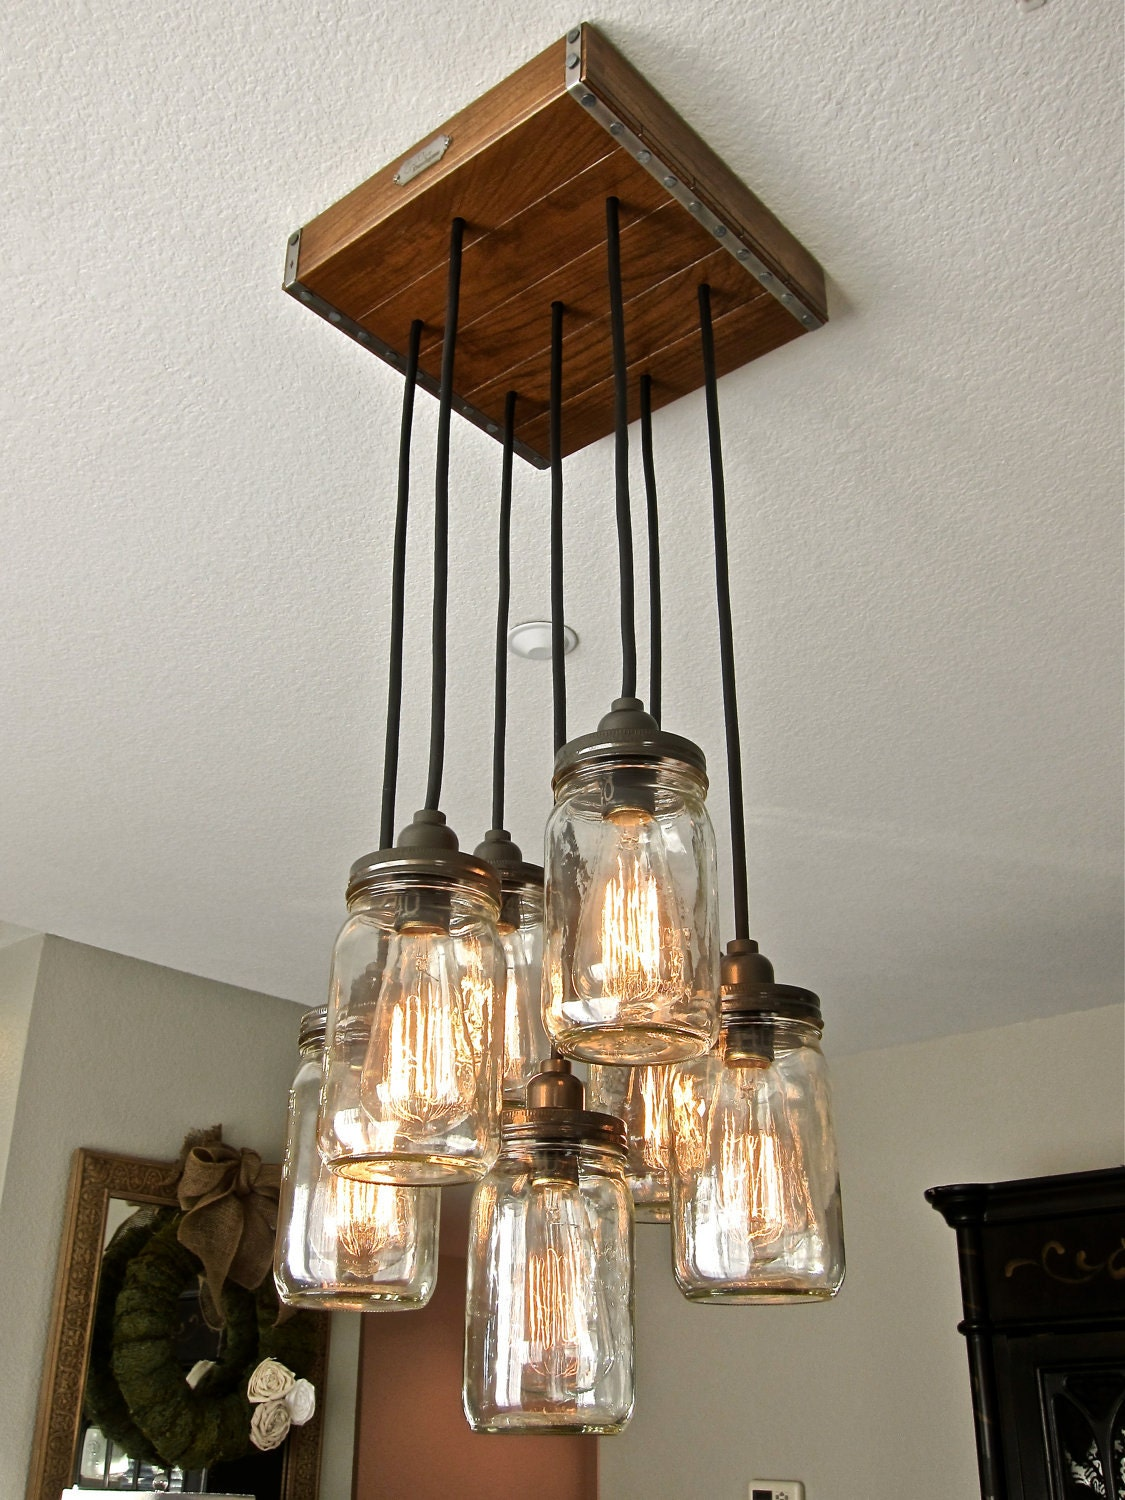 Mason jar pendant light chandelier w rustic style hardwood for Diy kitchen light fixtures